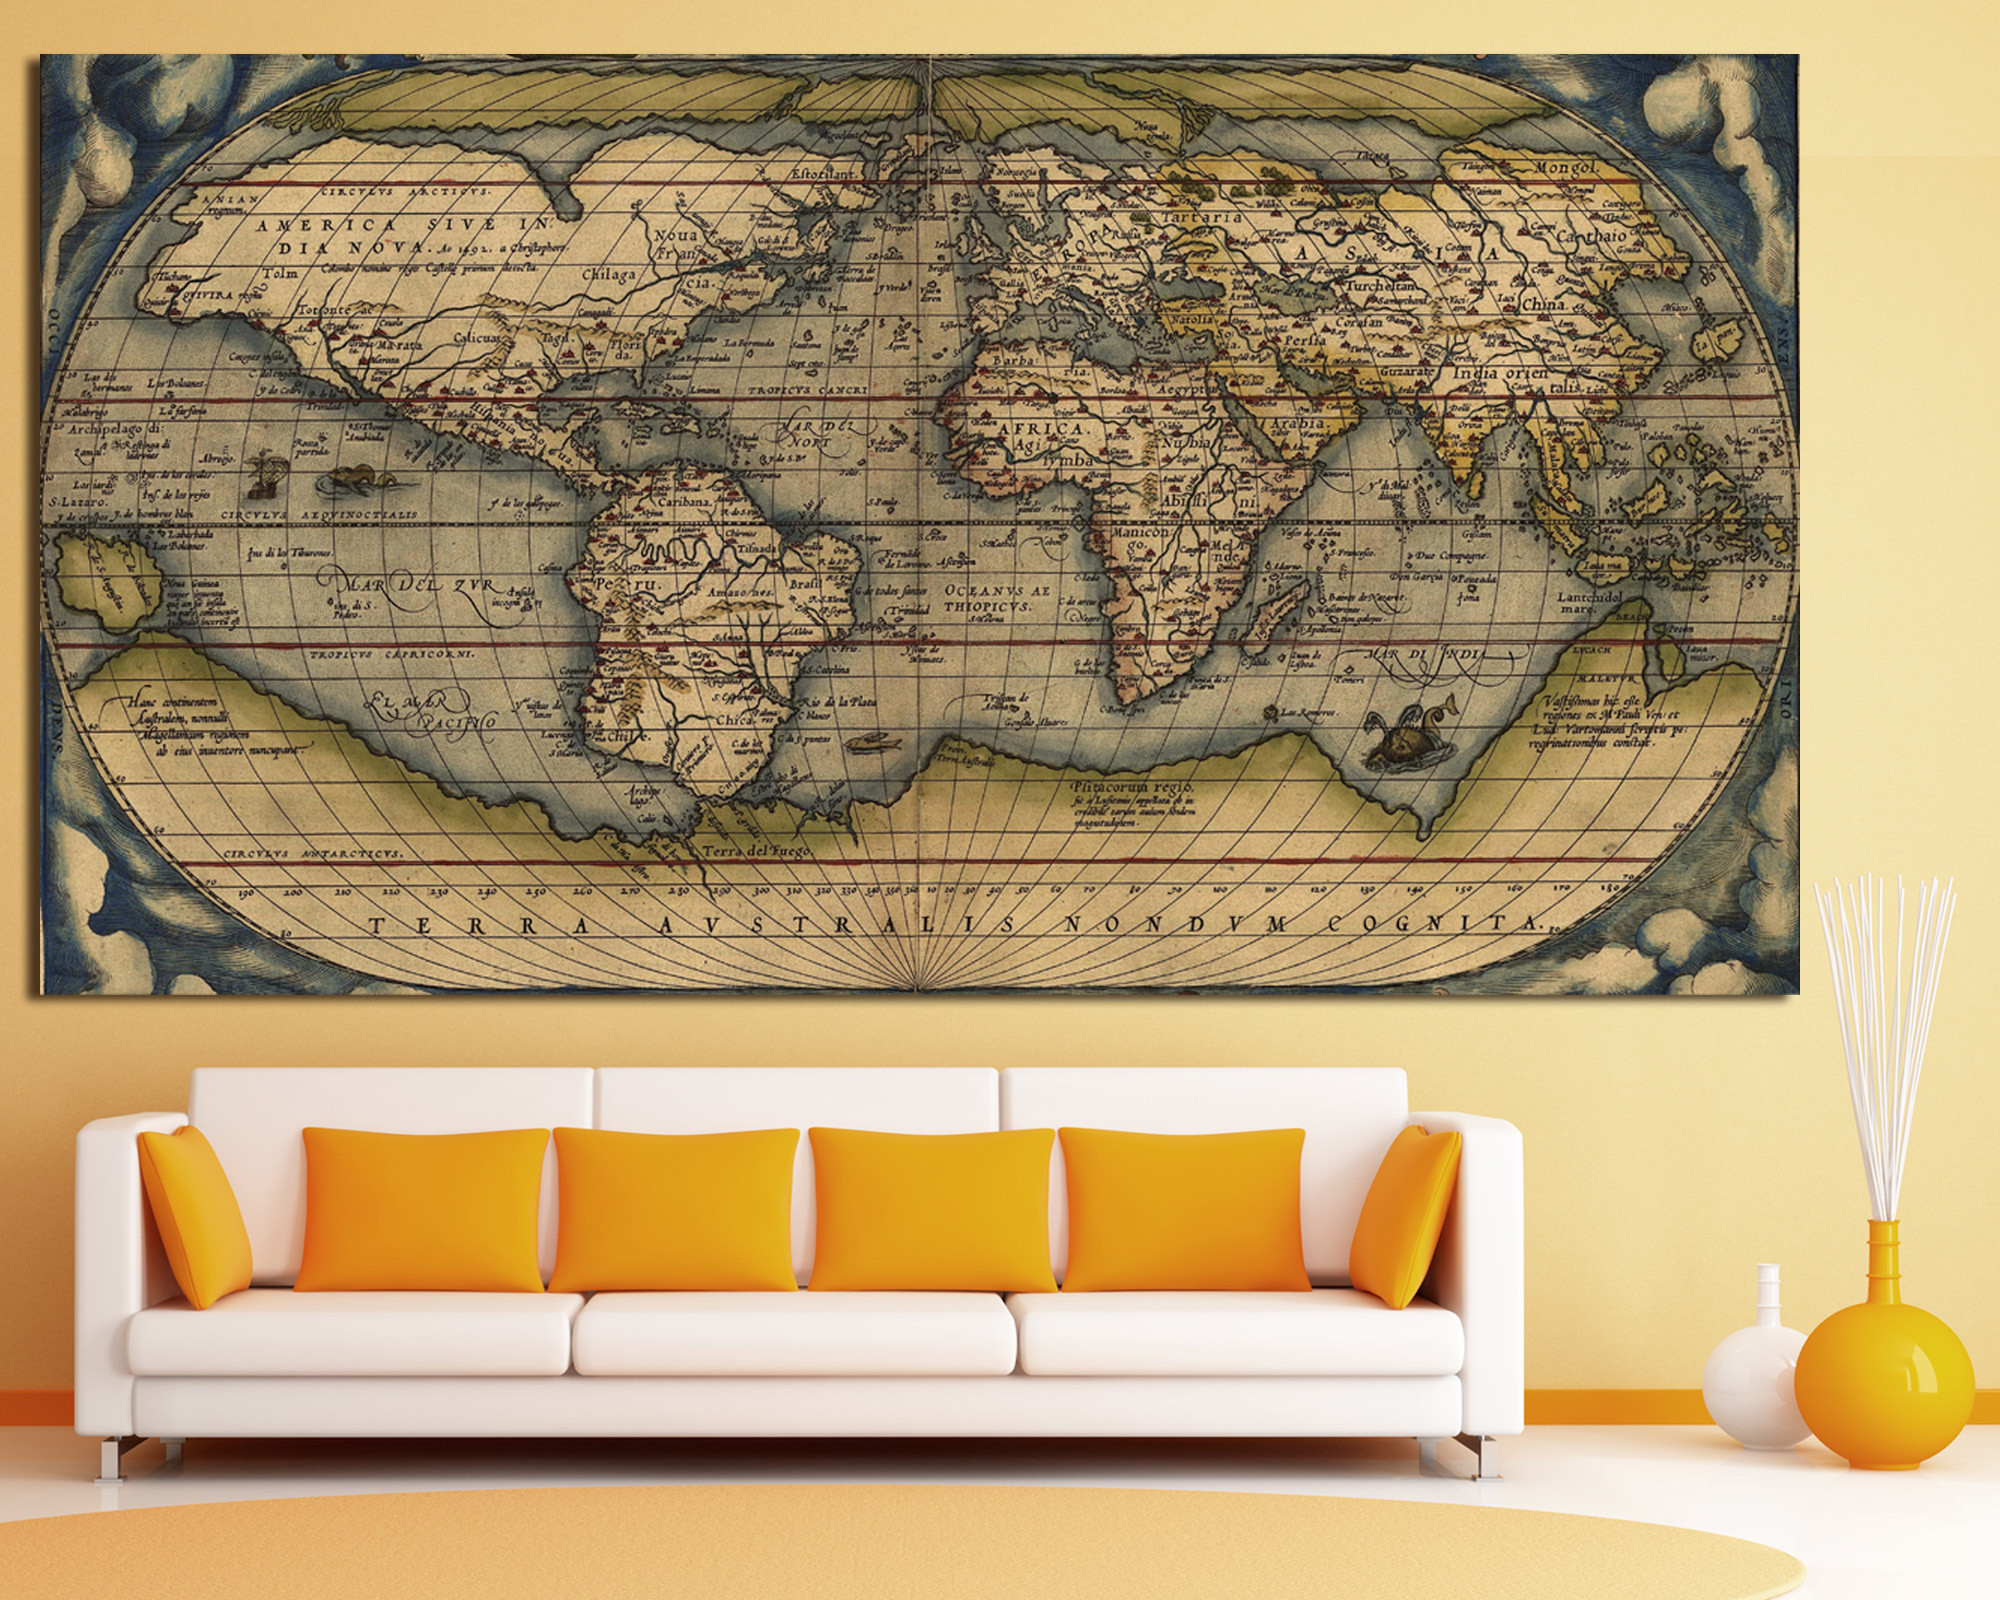 Antique world map wallpaper 39 images 1920x1080 wall nautical map wallpaper old world wallpaper wallpapersafari gumiabroncs Gallery